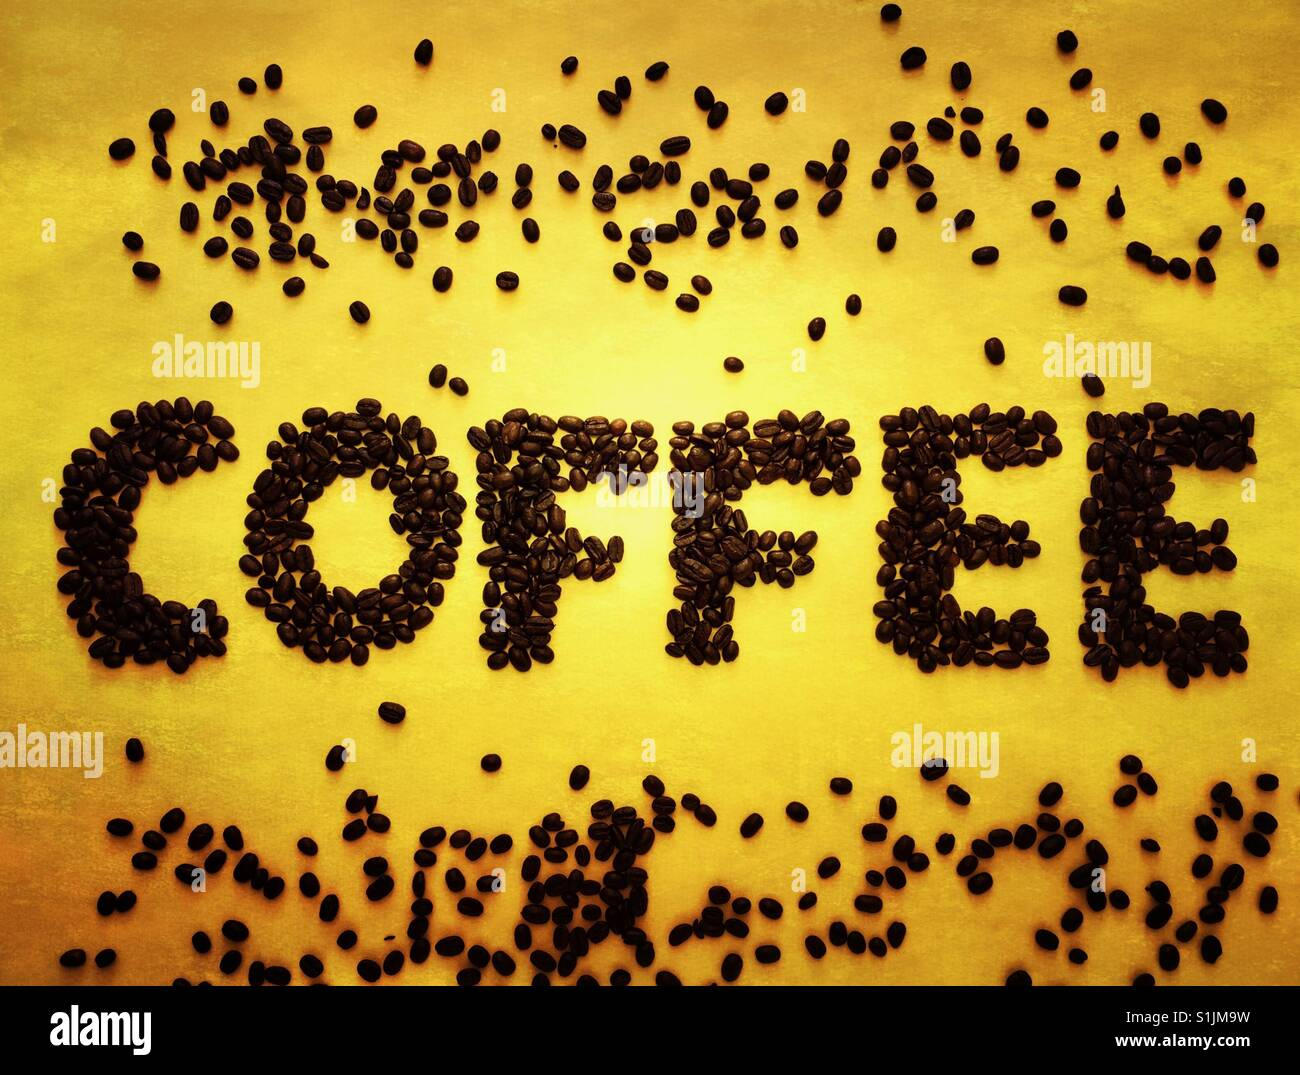 Coffee beans spelling out the word coffee on a yellow background - Stock Image